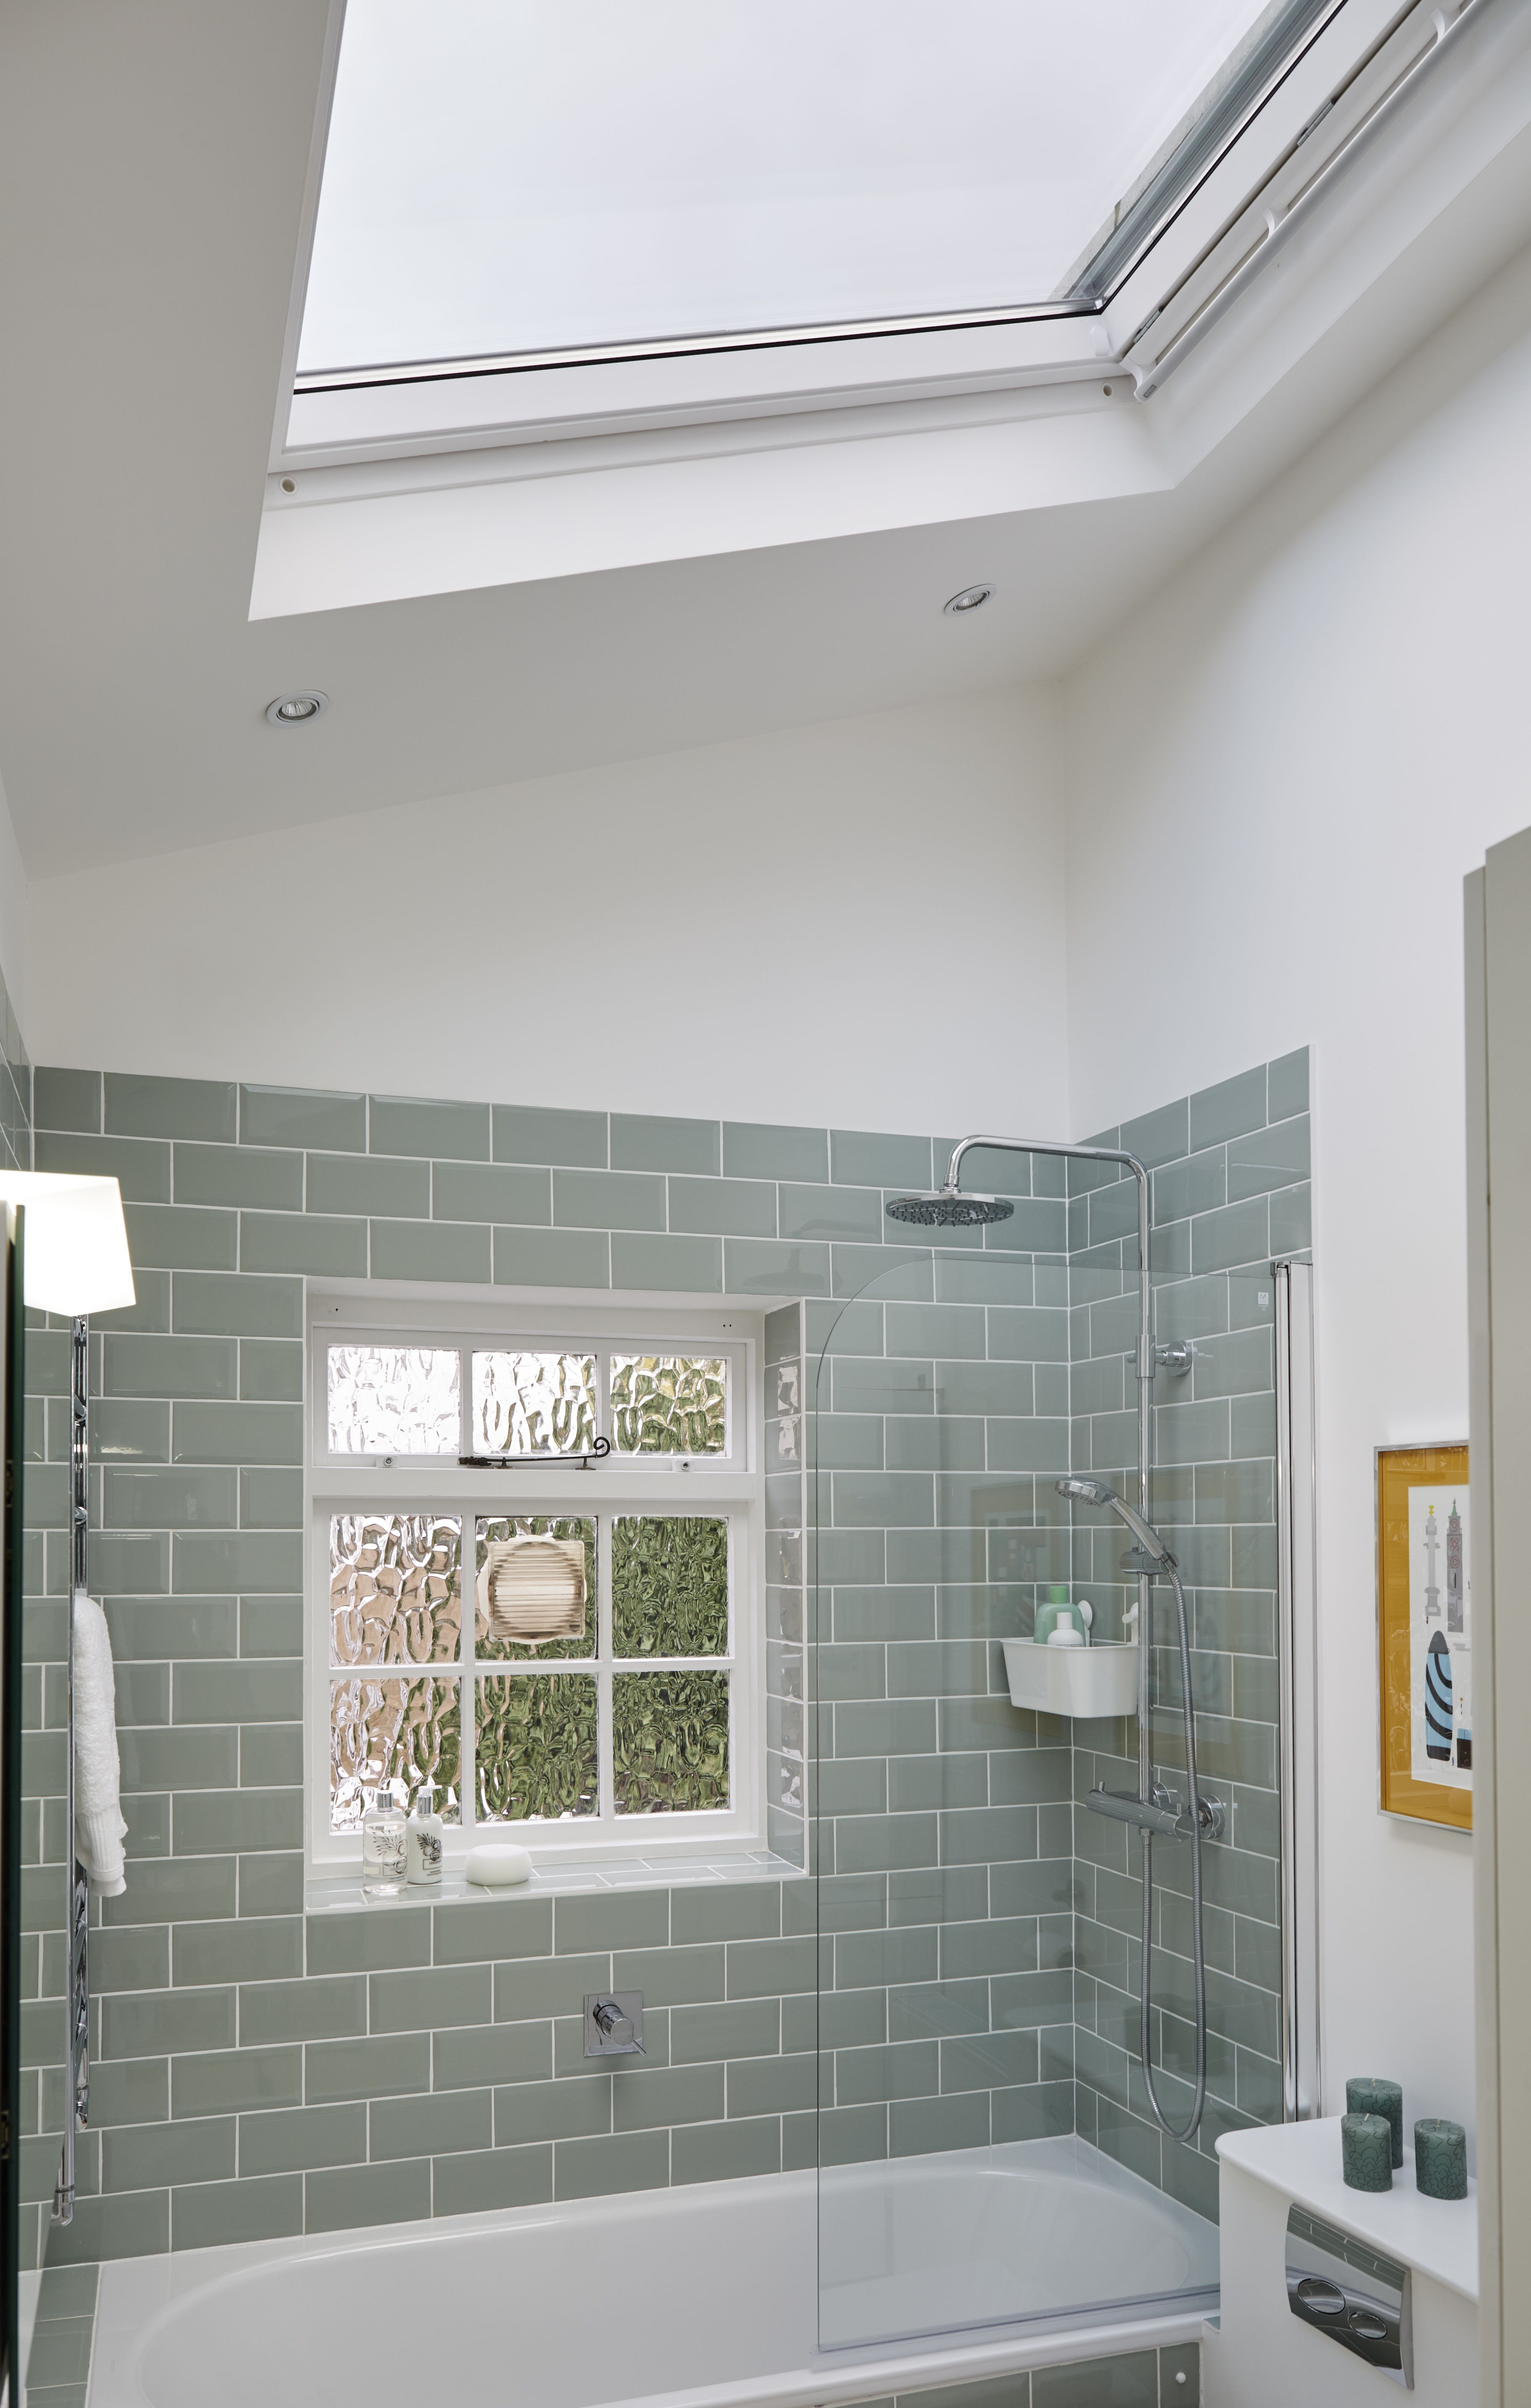 Bathroom with roof window This is a great idea for a home extention